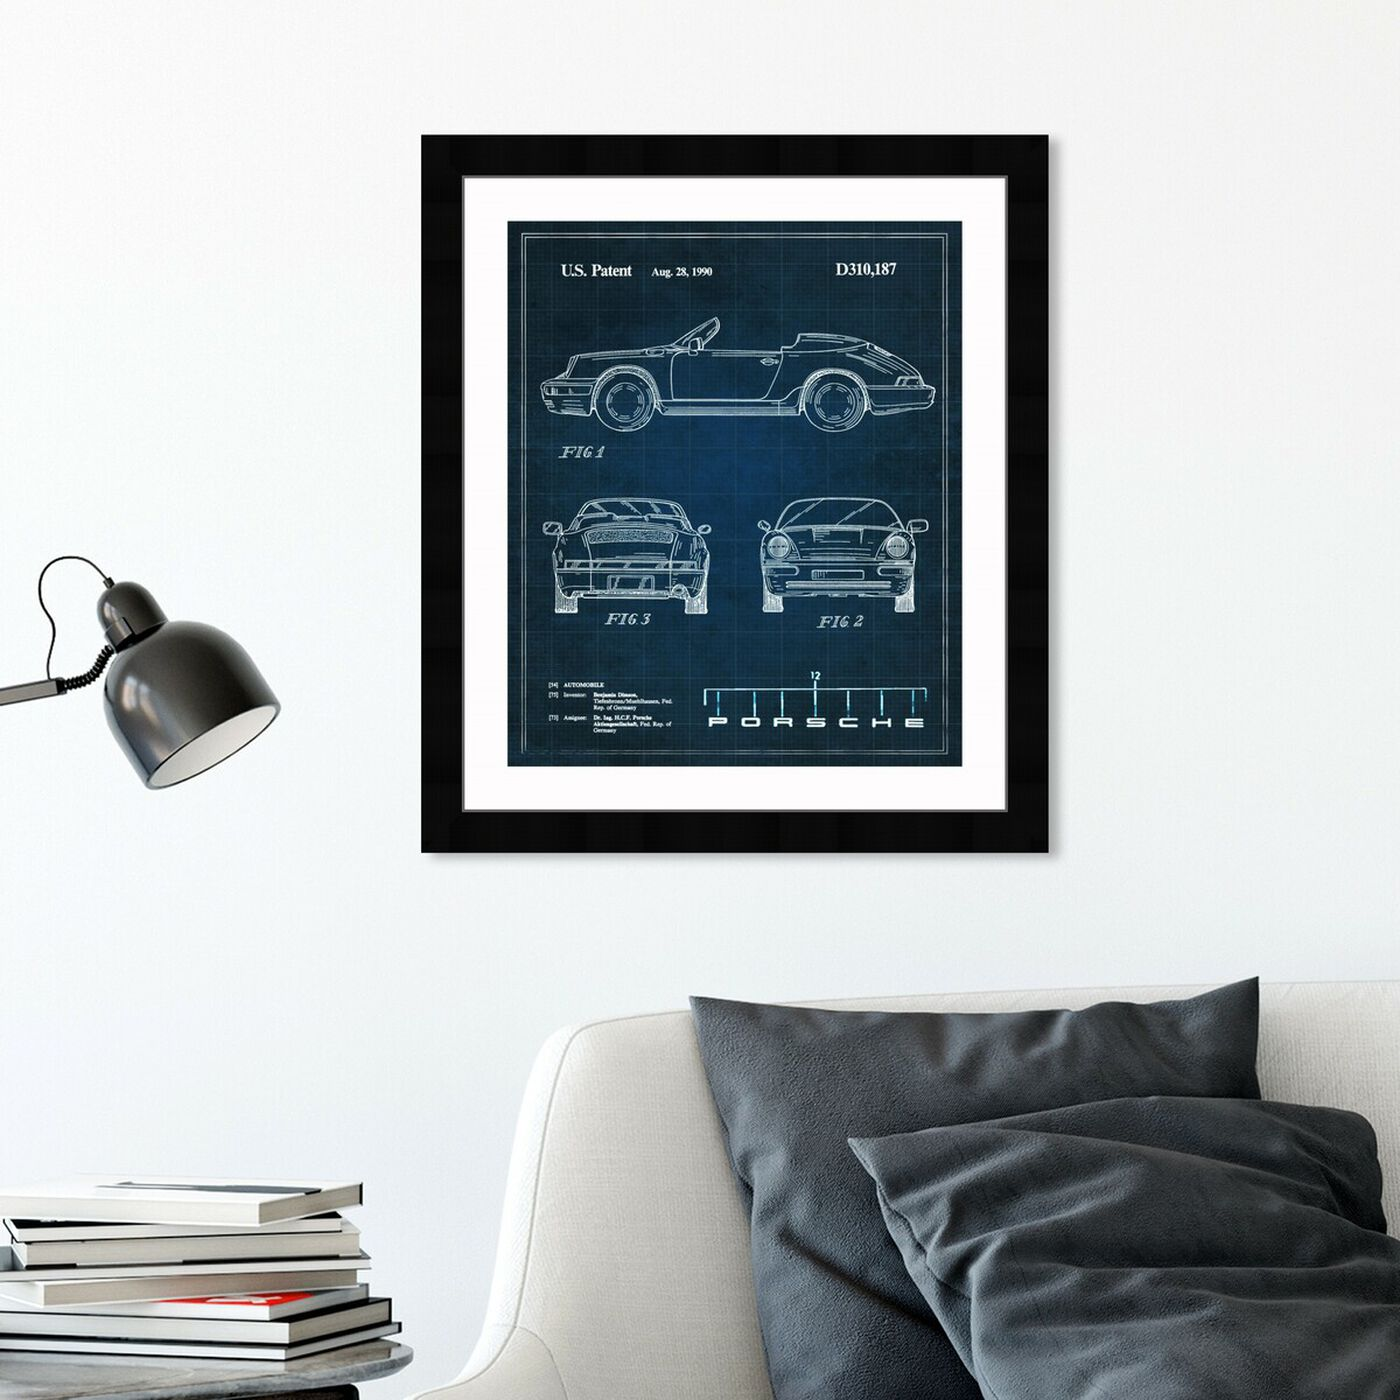 Hanging view of Porsche 911, 1990 II featuring transportation and automobiles art.